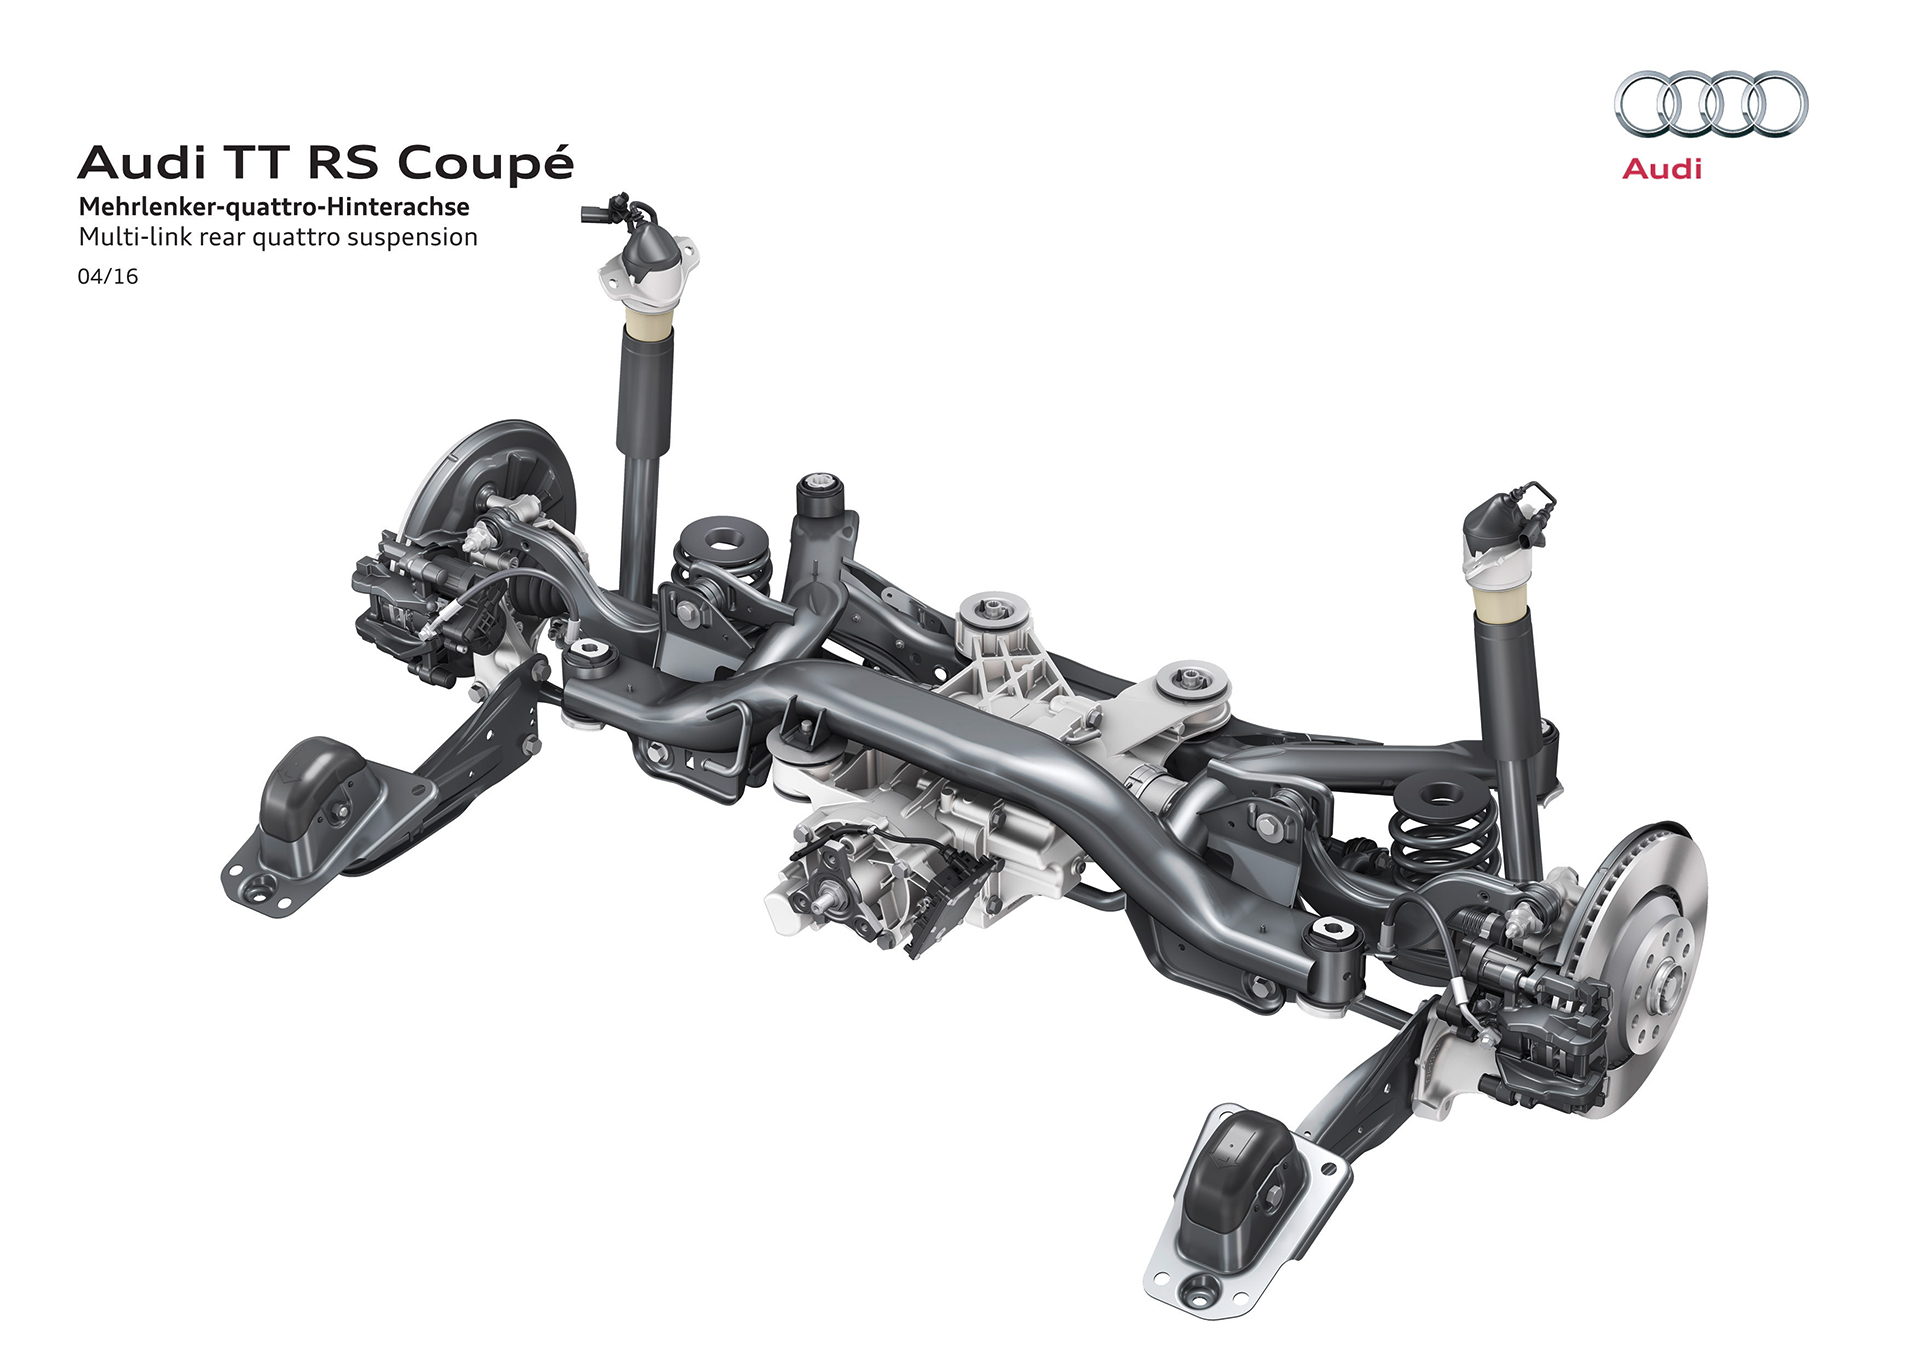 Audi TT RS coupe - 2016 - rear suspension